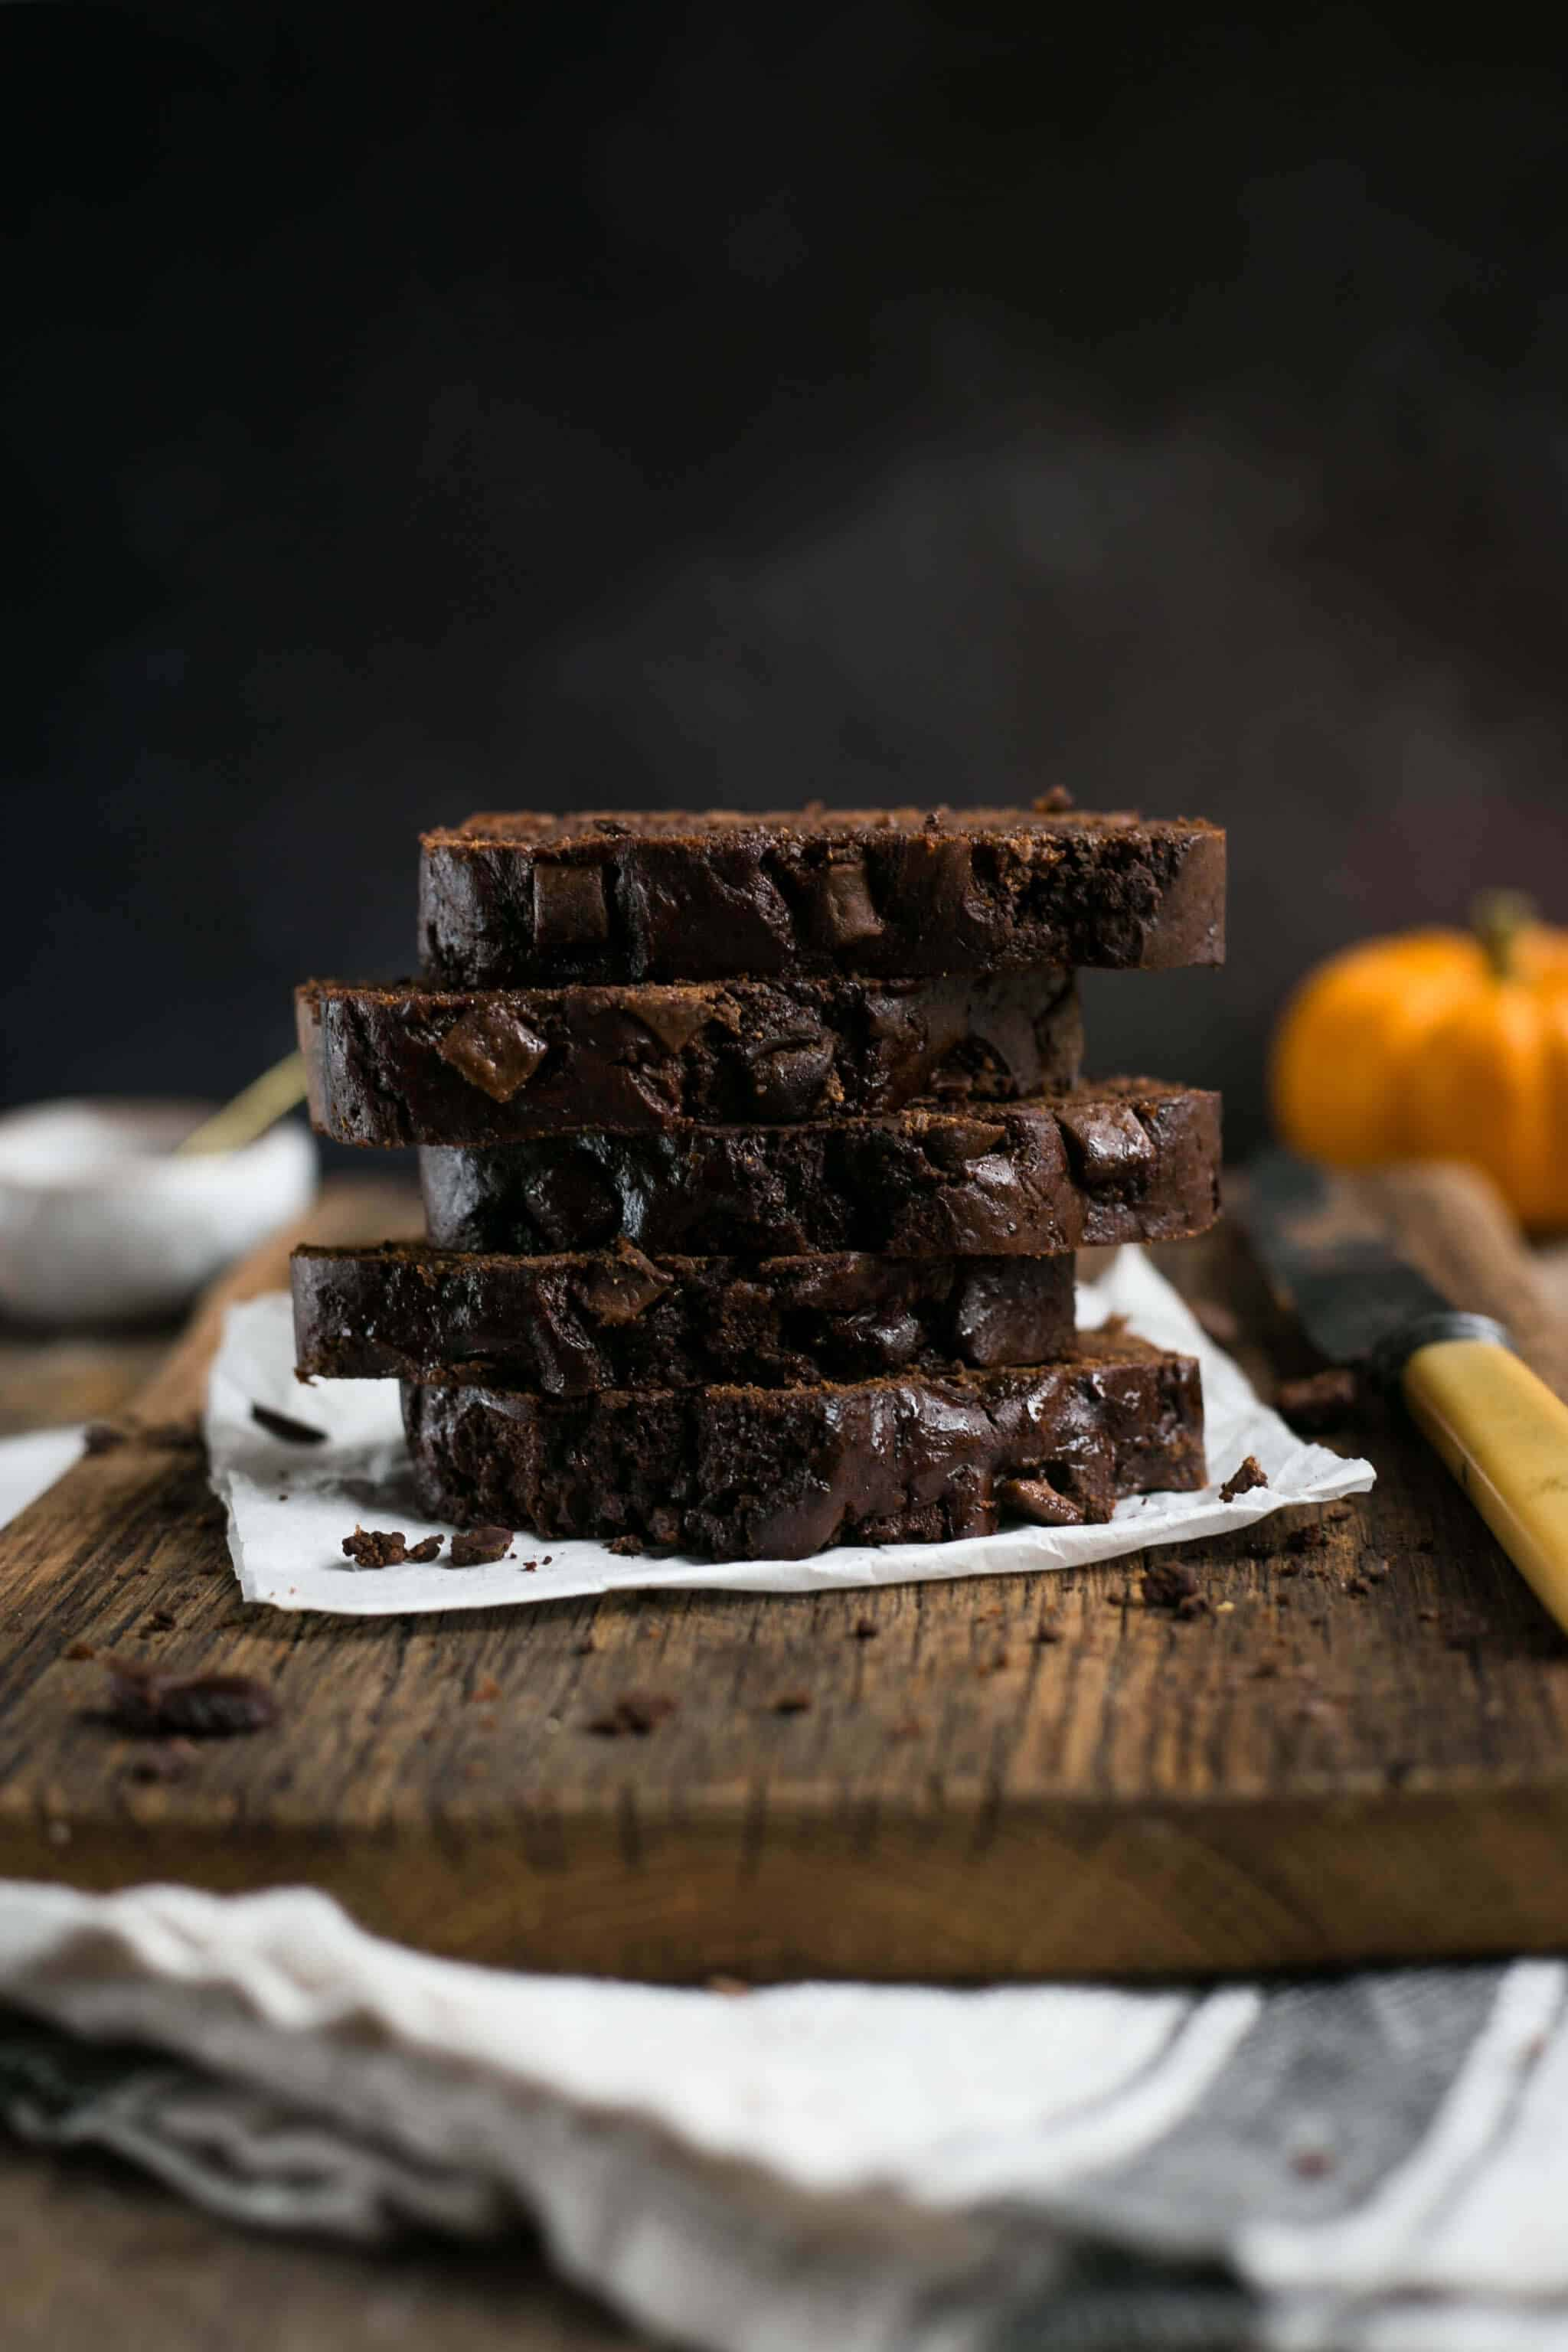 Spiced pumpkin chocolate bread recipe. Super decadent chocolatey goodness! #pumpkin bread #vegan | via @annabanana.co